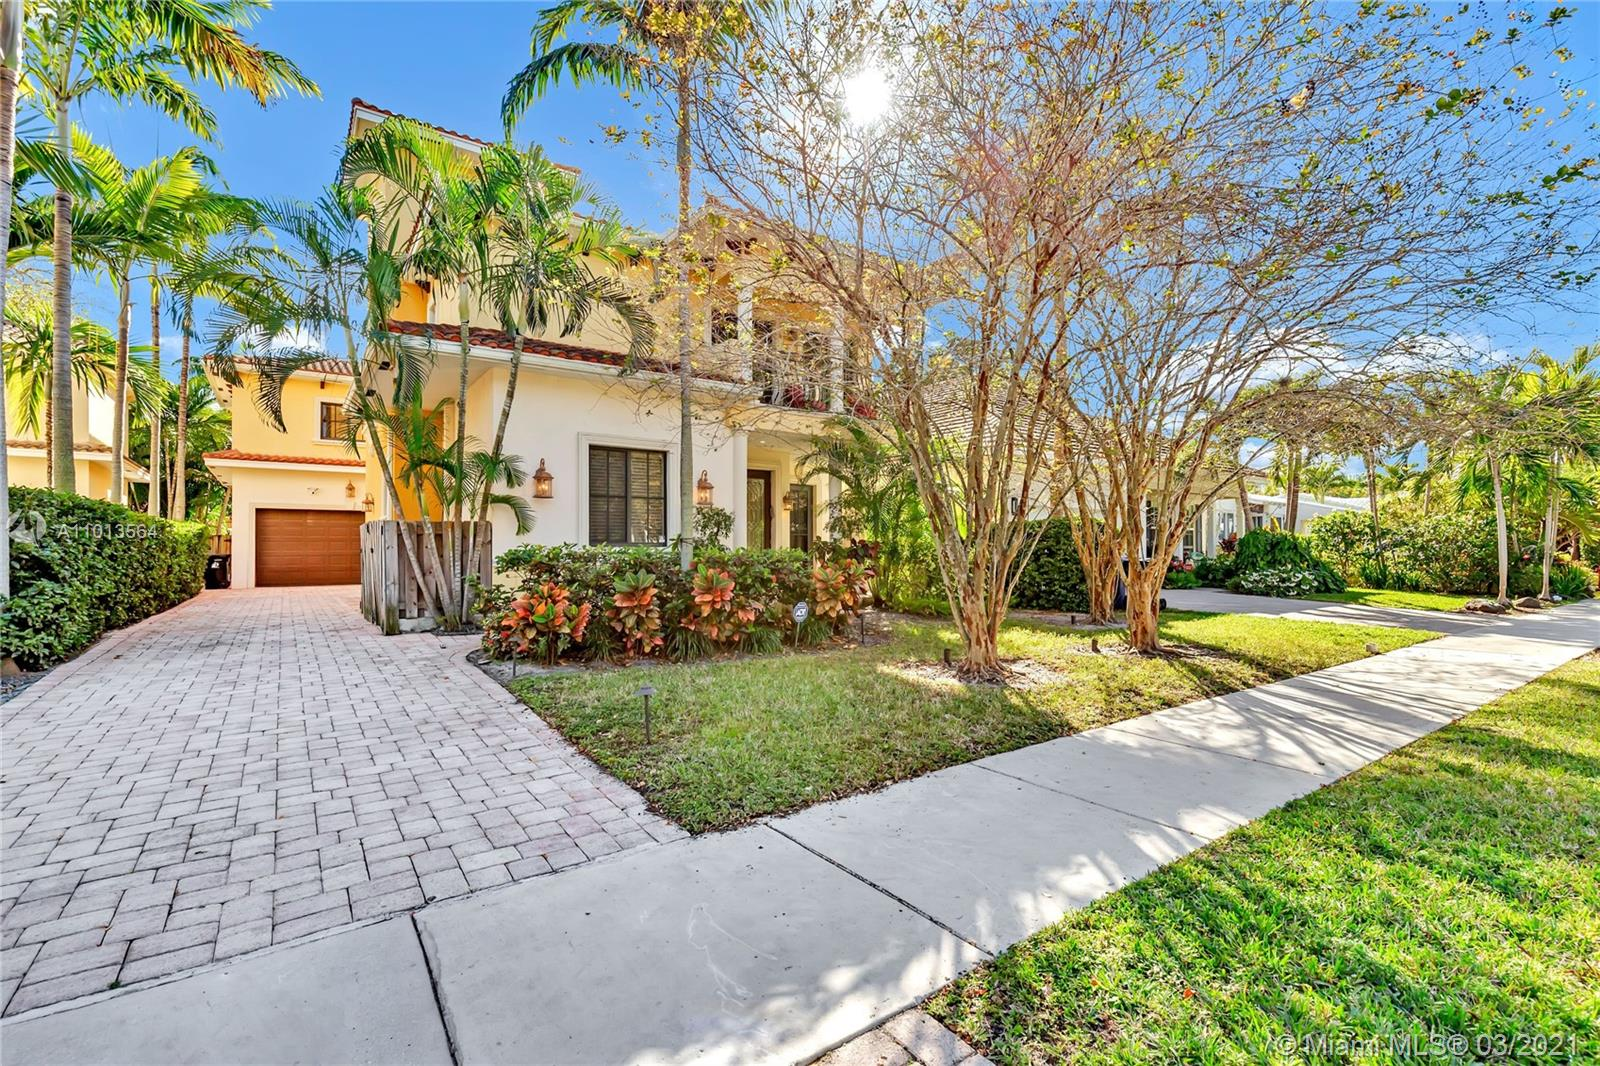 Gorgeous 4/4 pool home with European flair. No detail left untouched with a great location in prestigious Victoria Park. Minutes to famous Las Olas Blvd & 2 miles to iconic Fort Lauderdale Beach. This lovely home offers 2 living room areas, gourmet chefs kitchen with gas, wet bar, large pool for your enjoyment, one bedroom & full bath downstairs plus 3 spacious en-suite bedrooms upstairs including a huge master bedroom. With a soothing neutral color scheme along with tropical landscaping makes this the perfect residence. You will feel like you are in paradise! This unique home offers a lot of natural light, numerous sitting/entertaining areas with an open flowing floor plan. Large sunlit pool provides the ideal tropical backdrop for your entertaining. This Victoria Park location is hot!!